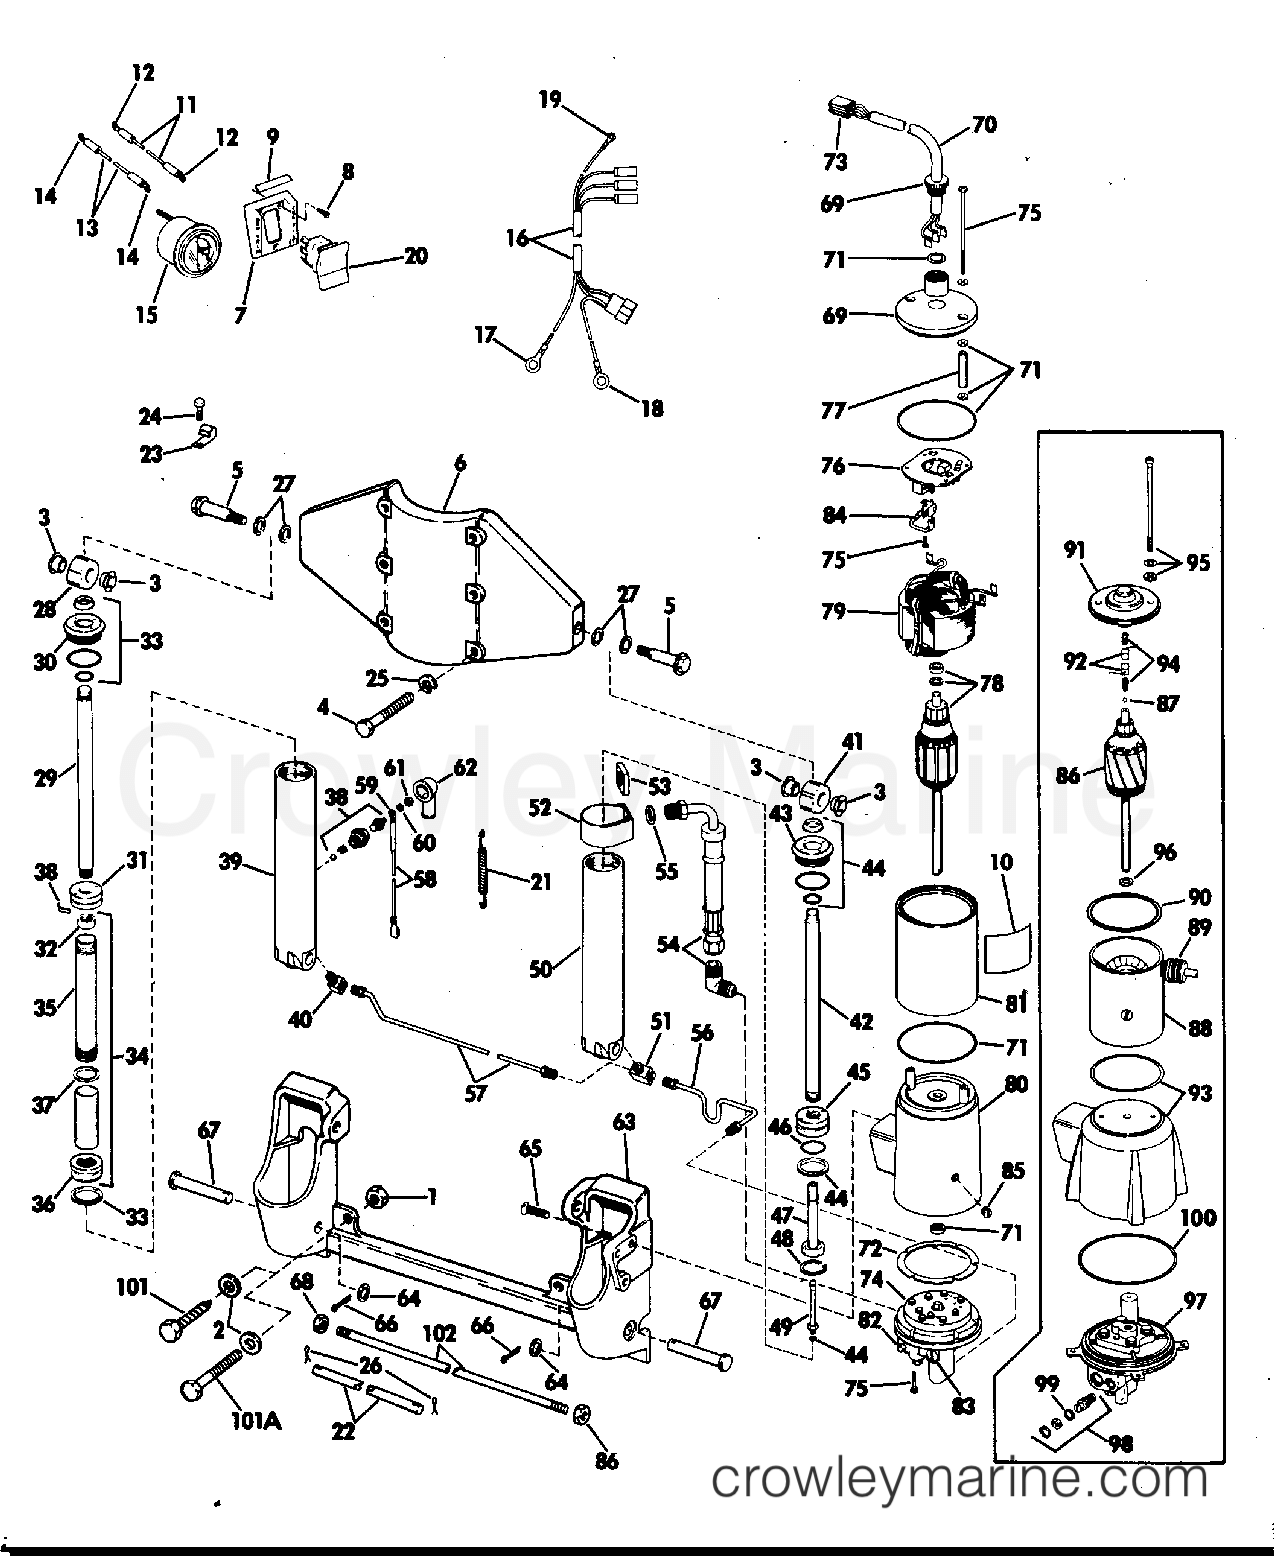 ZHXg1hom power tilt and trim 50 hp 1974 rigging parts accessories johnson outboard wiring diagram pdf at cos-gaming.co